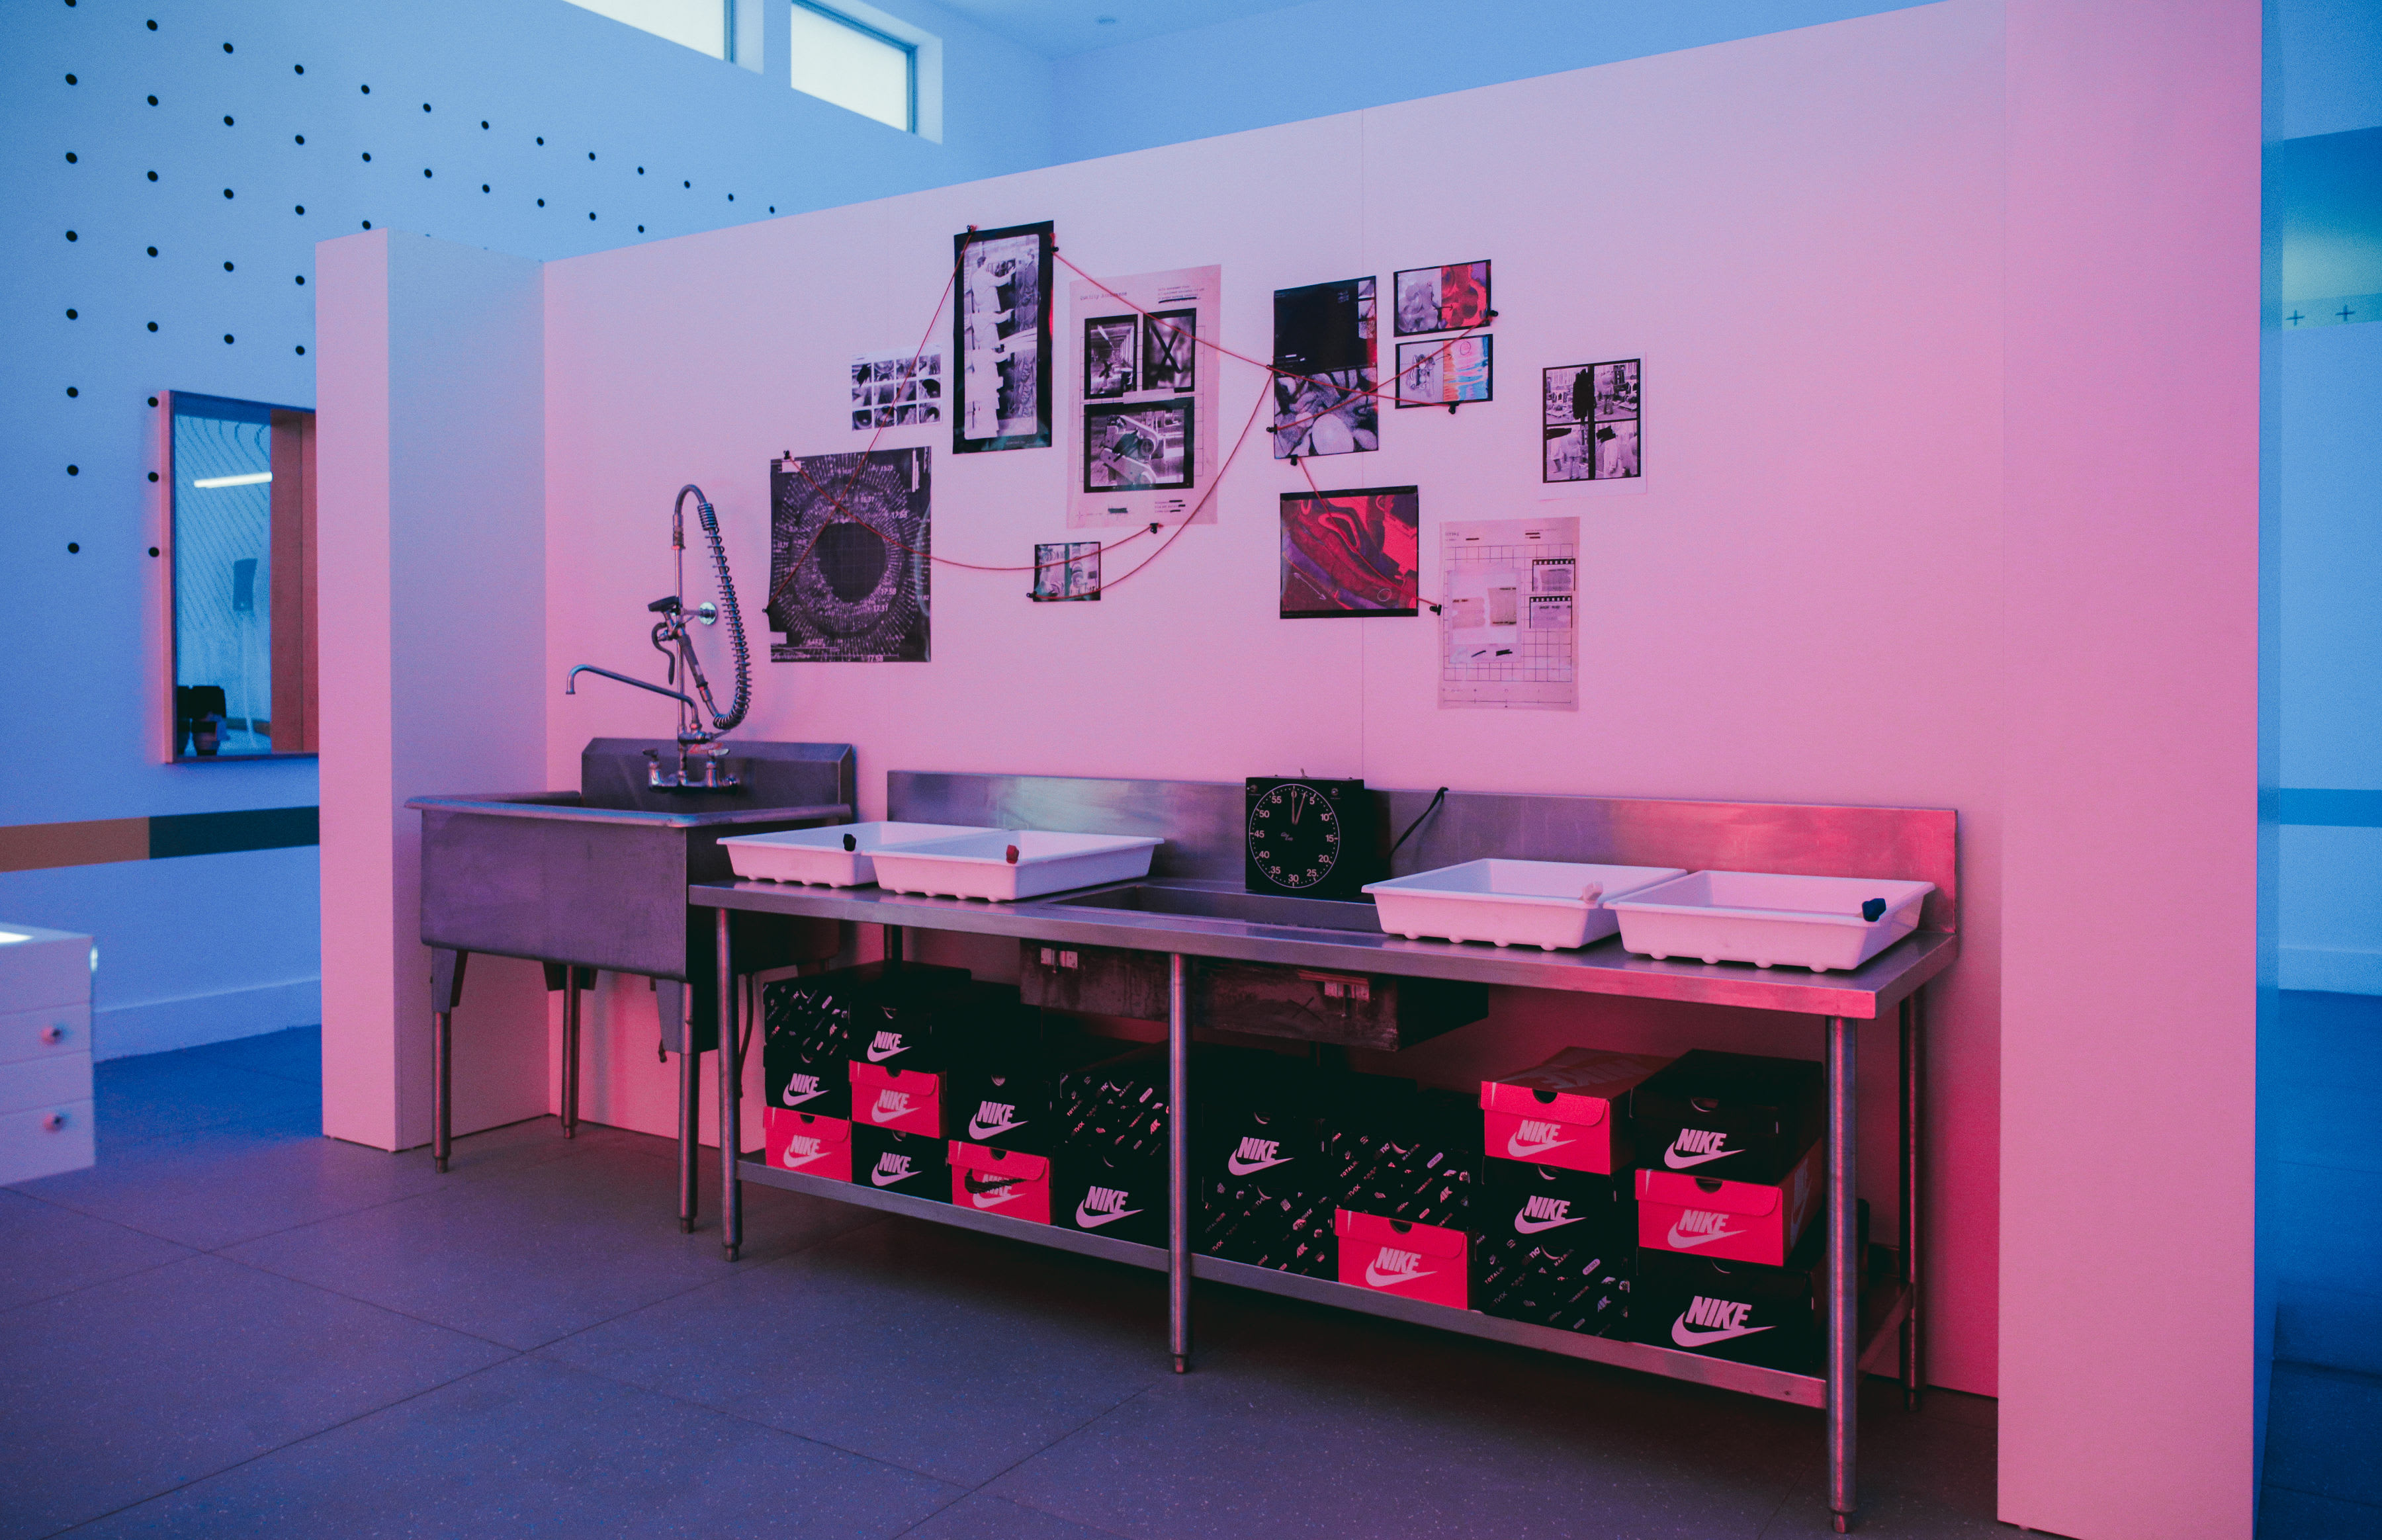 Take a look inside Nike's 'Department of Unimaginable' in